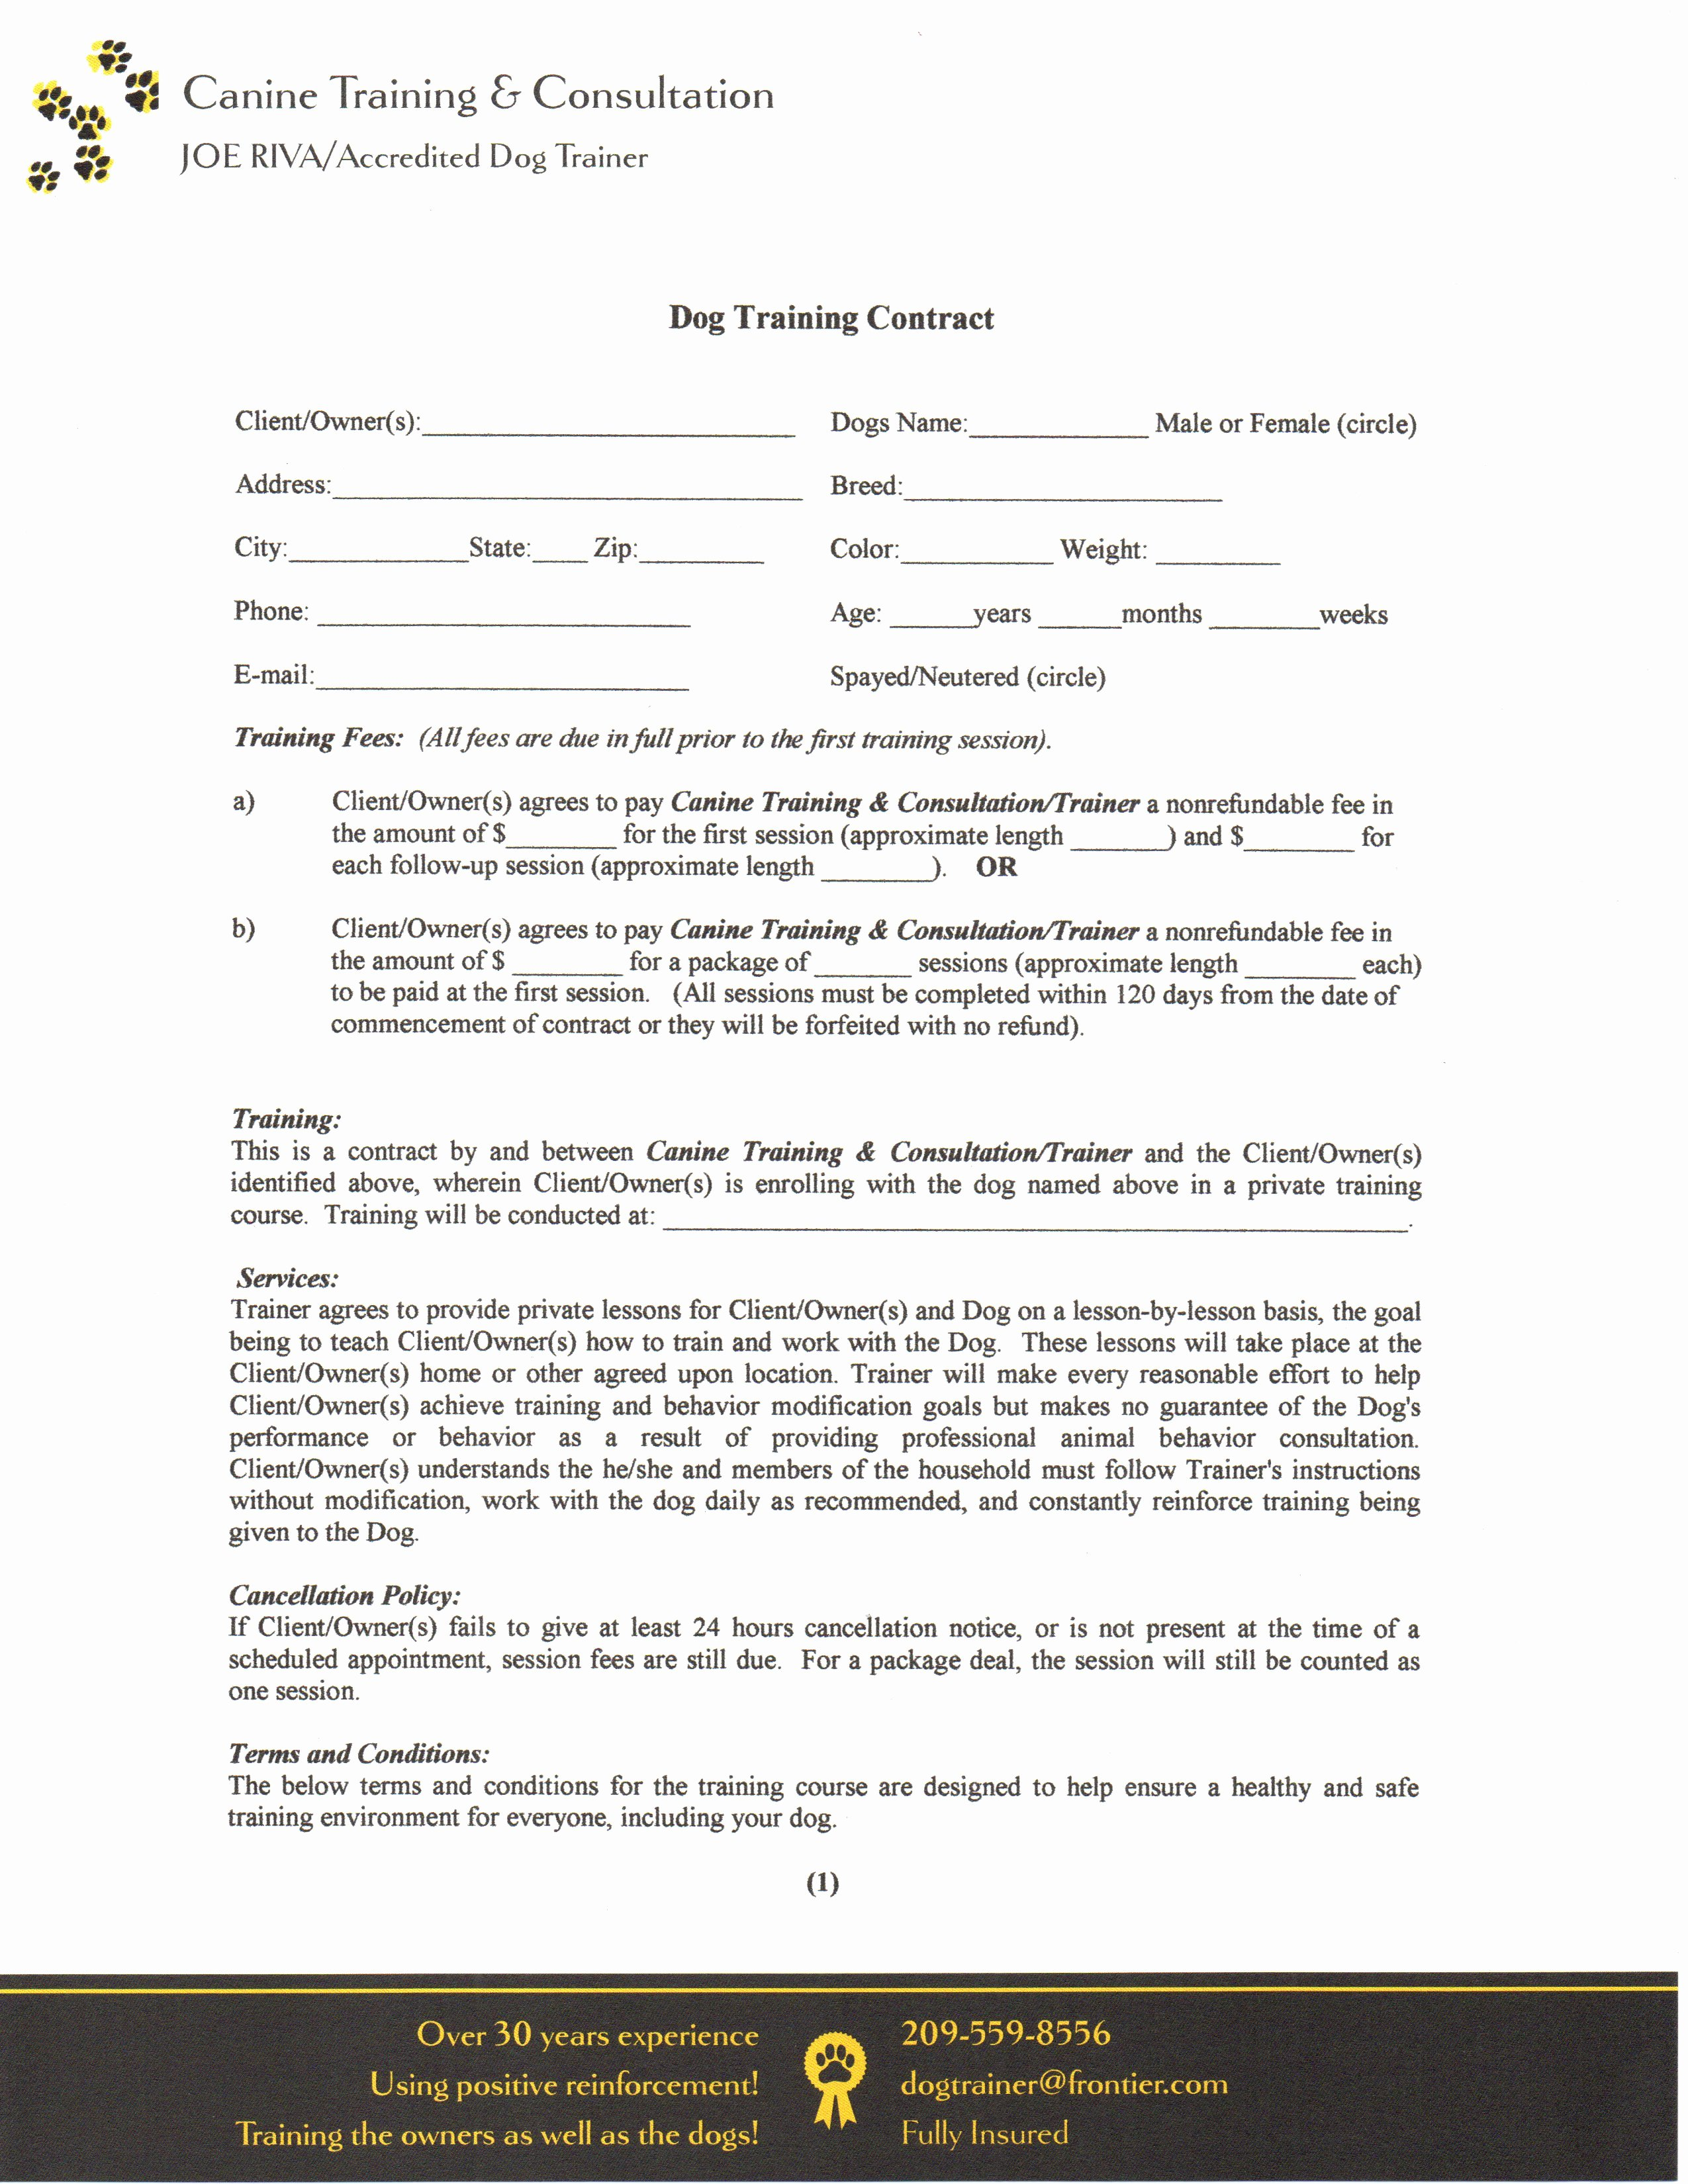 Dog Training Contract Template Luxury Contract